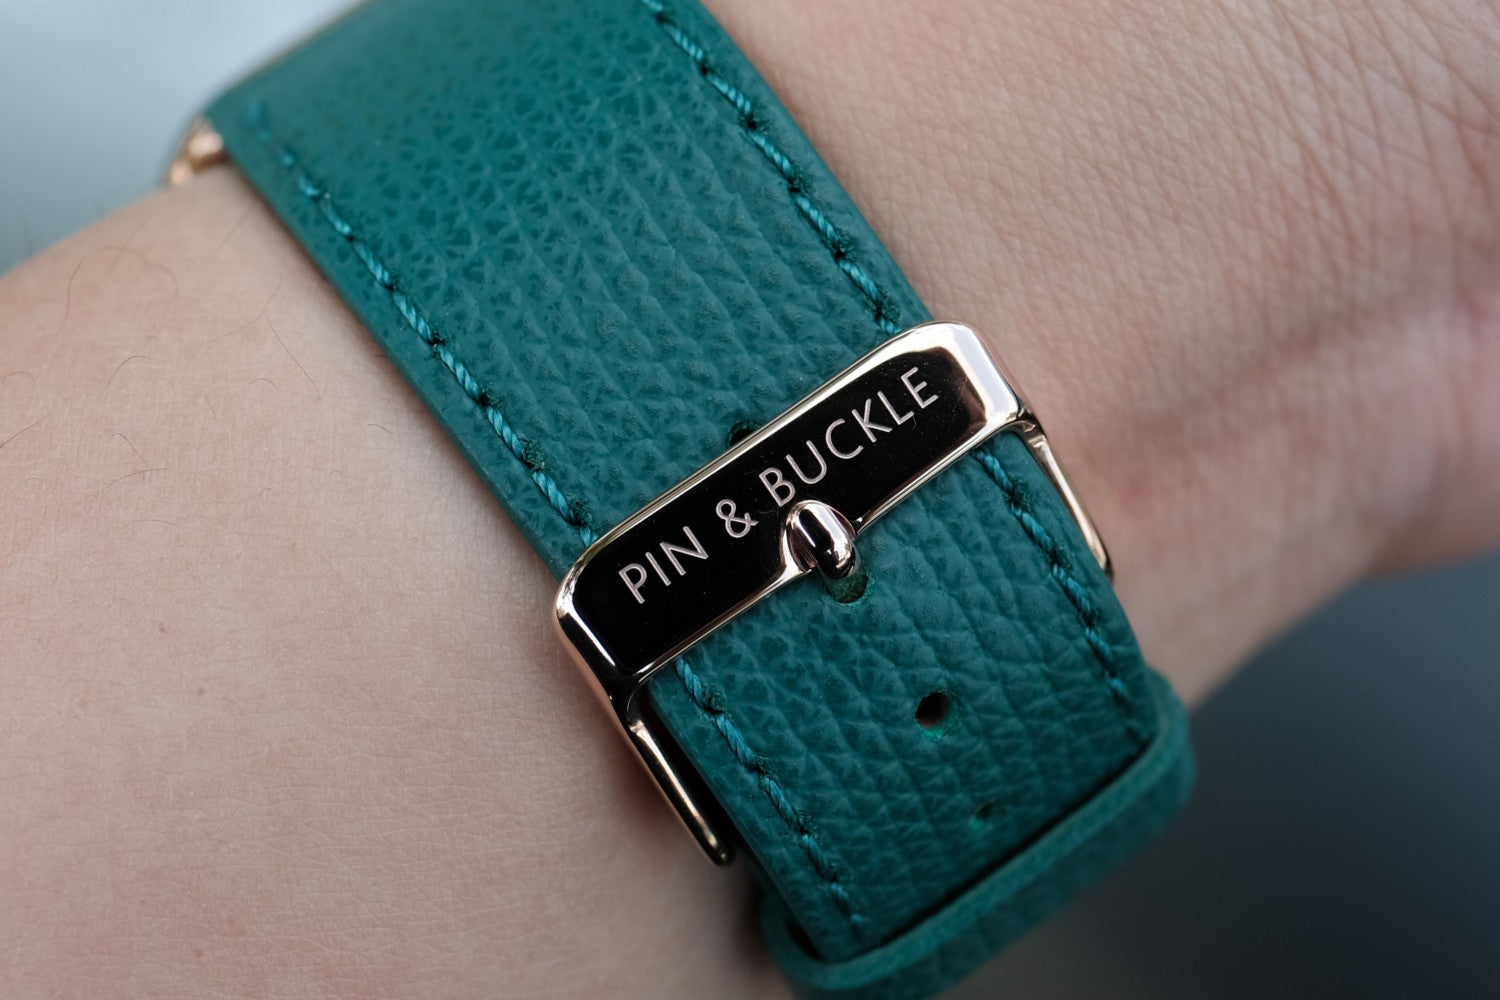 Pin and Buckle Apple Watch Bands - Epsom - Leather Apple Watch Band - Forest Green - Polished Stainless Steel Buckle